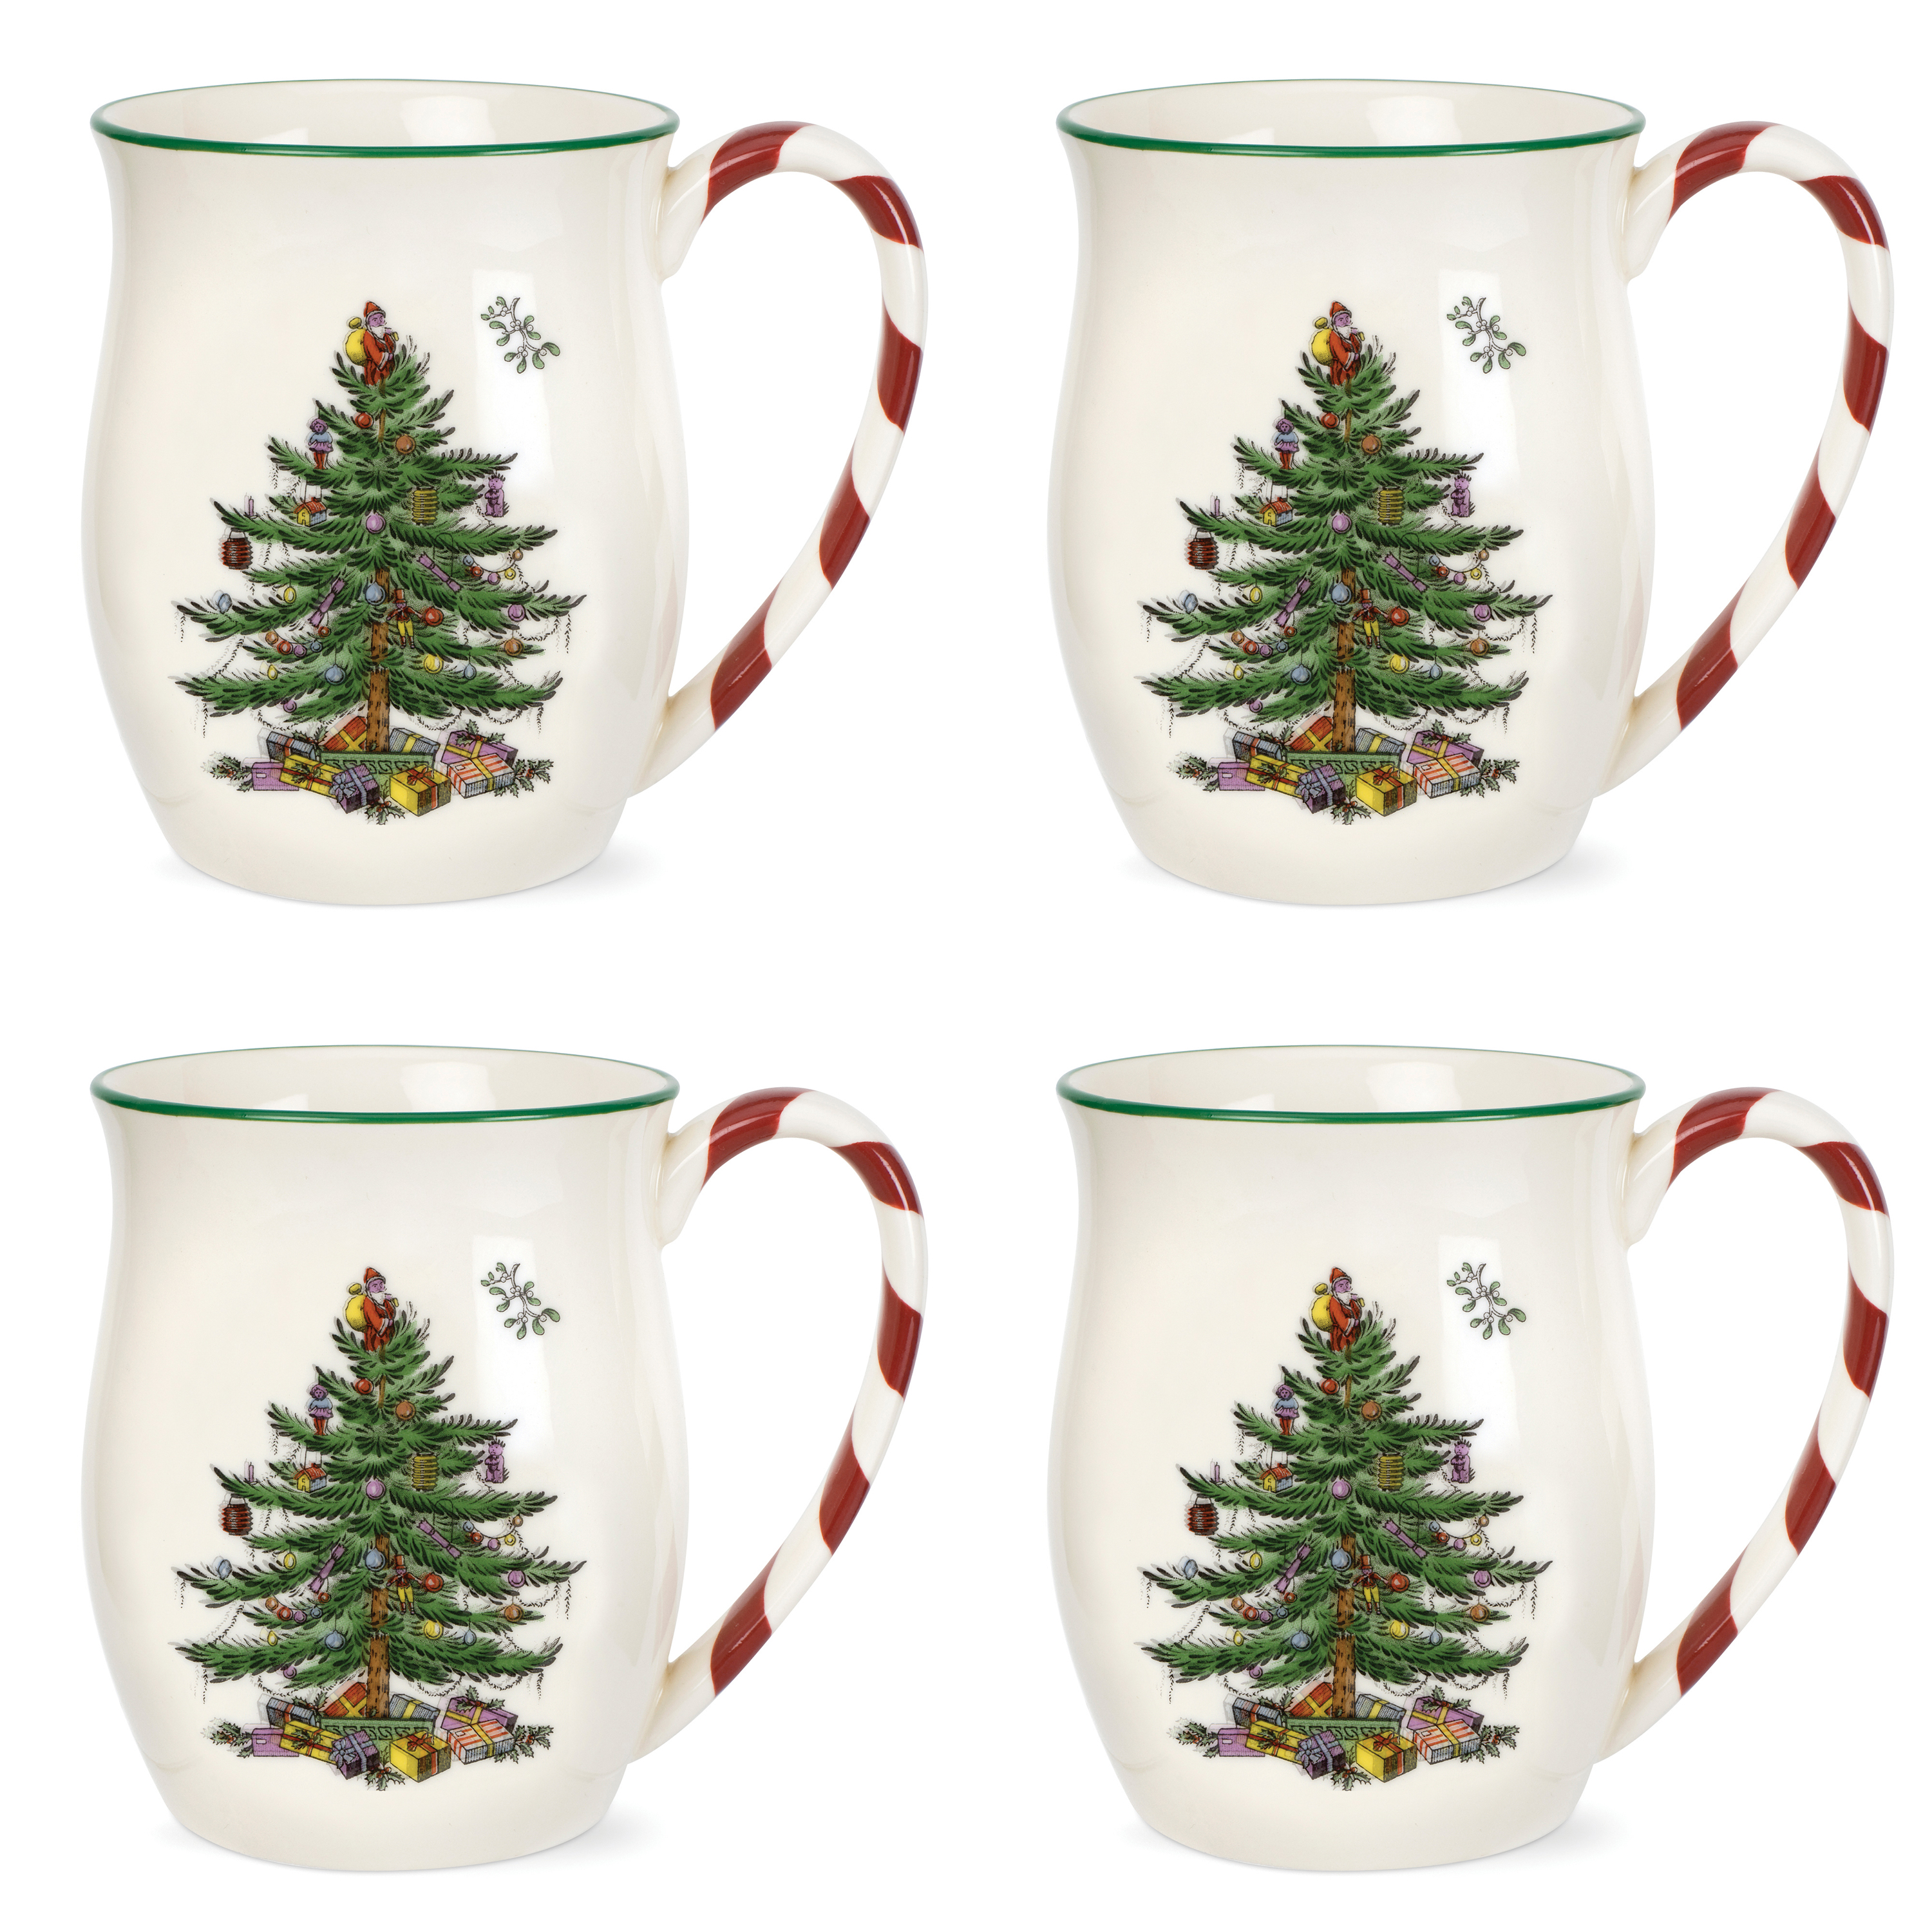 spode christmas tree mugs with peppermint handles set of 4. Black Bedroom Furniture Sets. Home Design Ideas